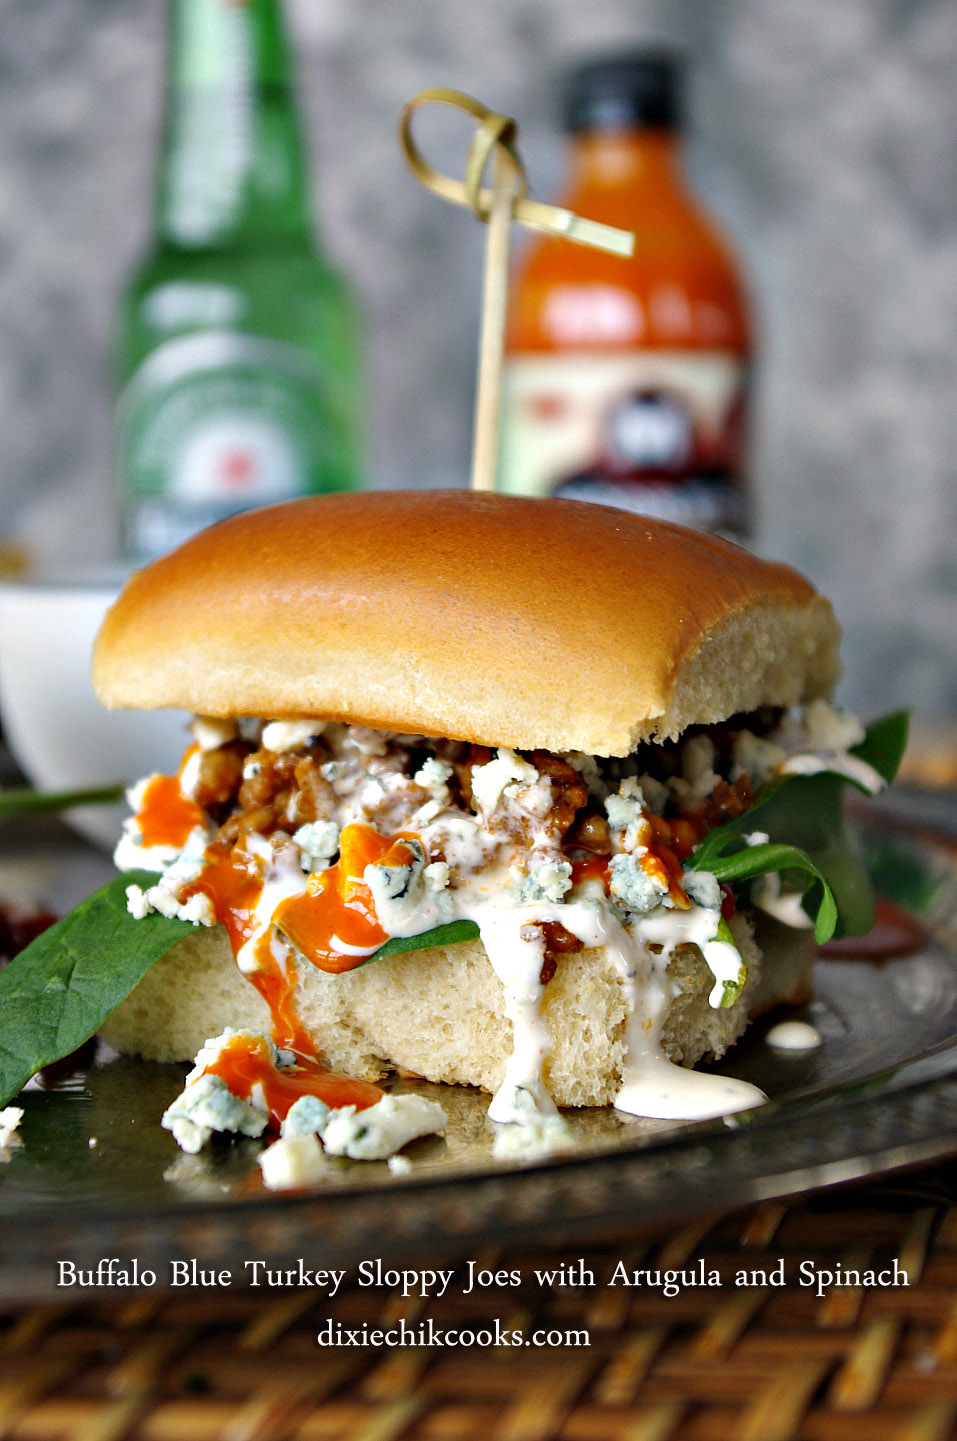 Buffalo Blue Turkey Slider